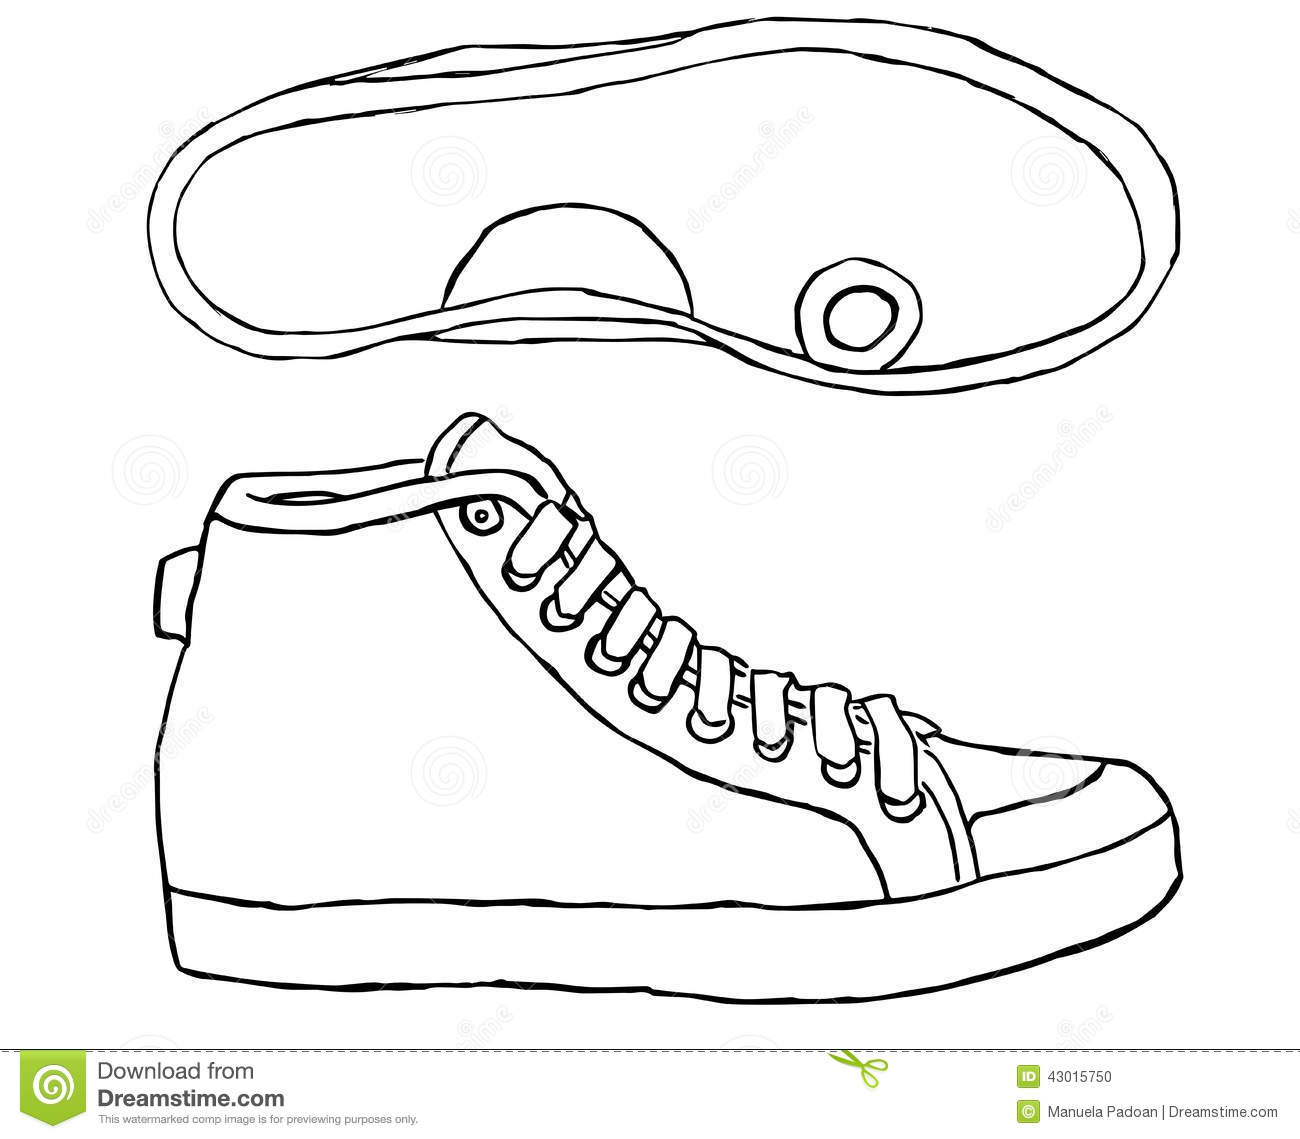 Tennis Shoe On A White Background Stock Vector